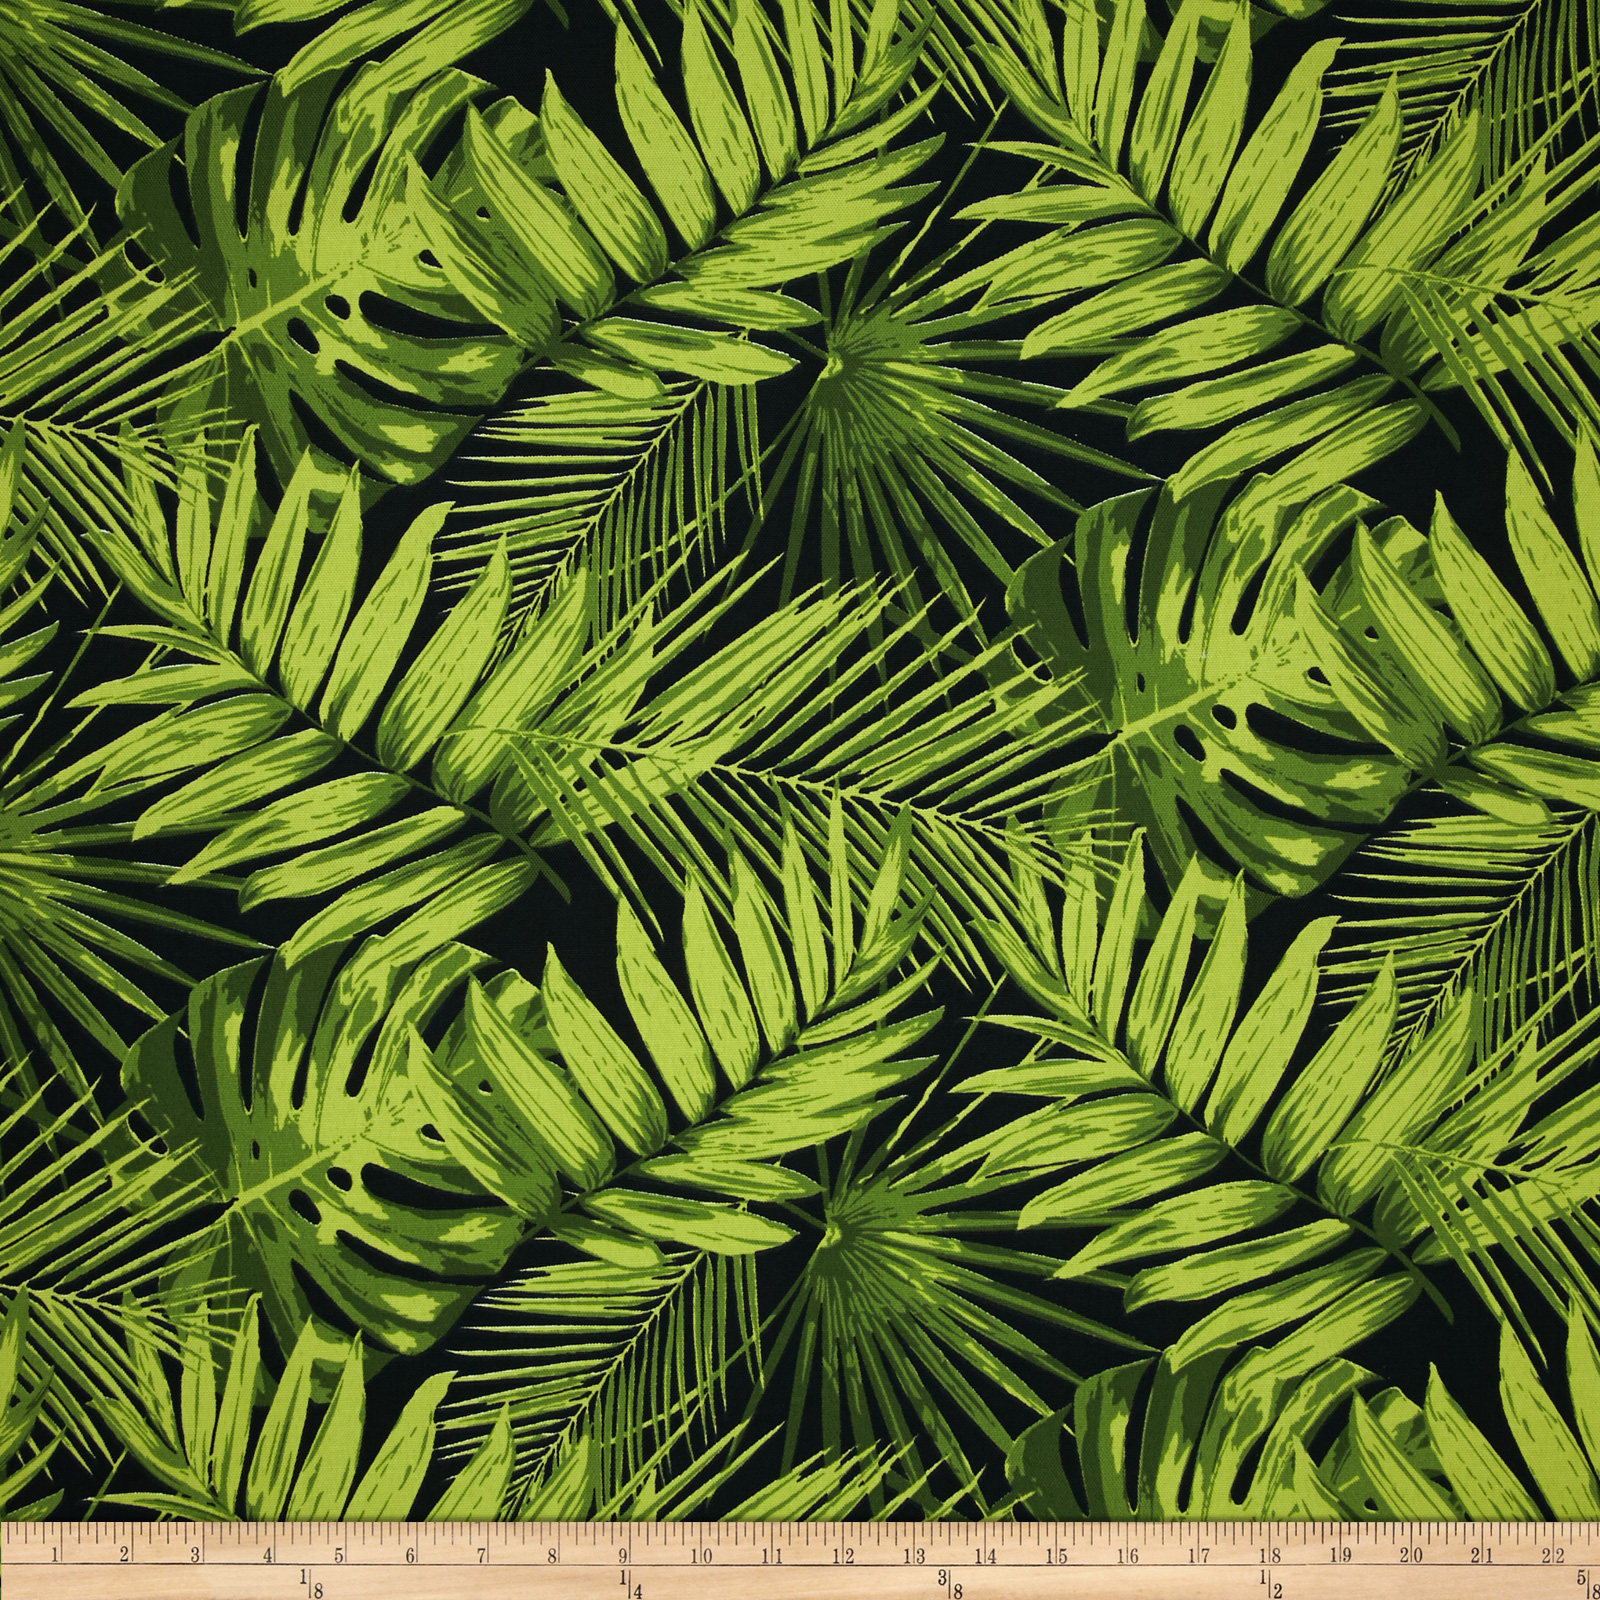 Terrasol Indoor/Outdoor Tropical Fronds Ebony Fabric by Tempro in USA